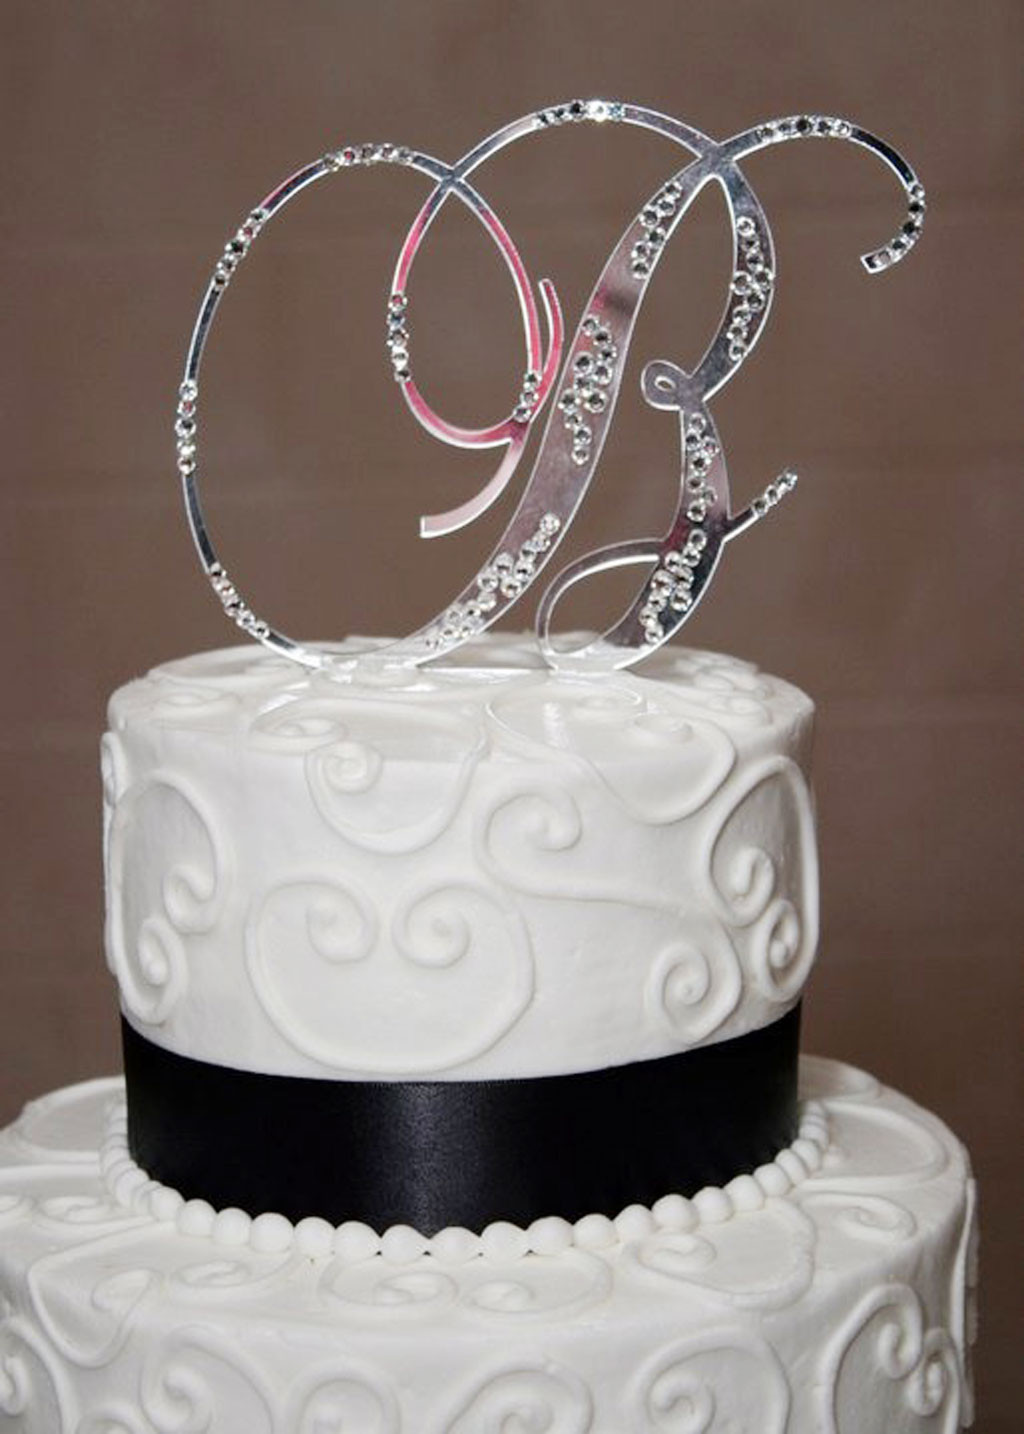 Cake Toppers For Wedding Cakes  Initial B Wedding Bling Cake Topper Wedding Cake Cake